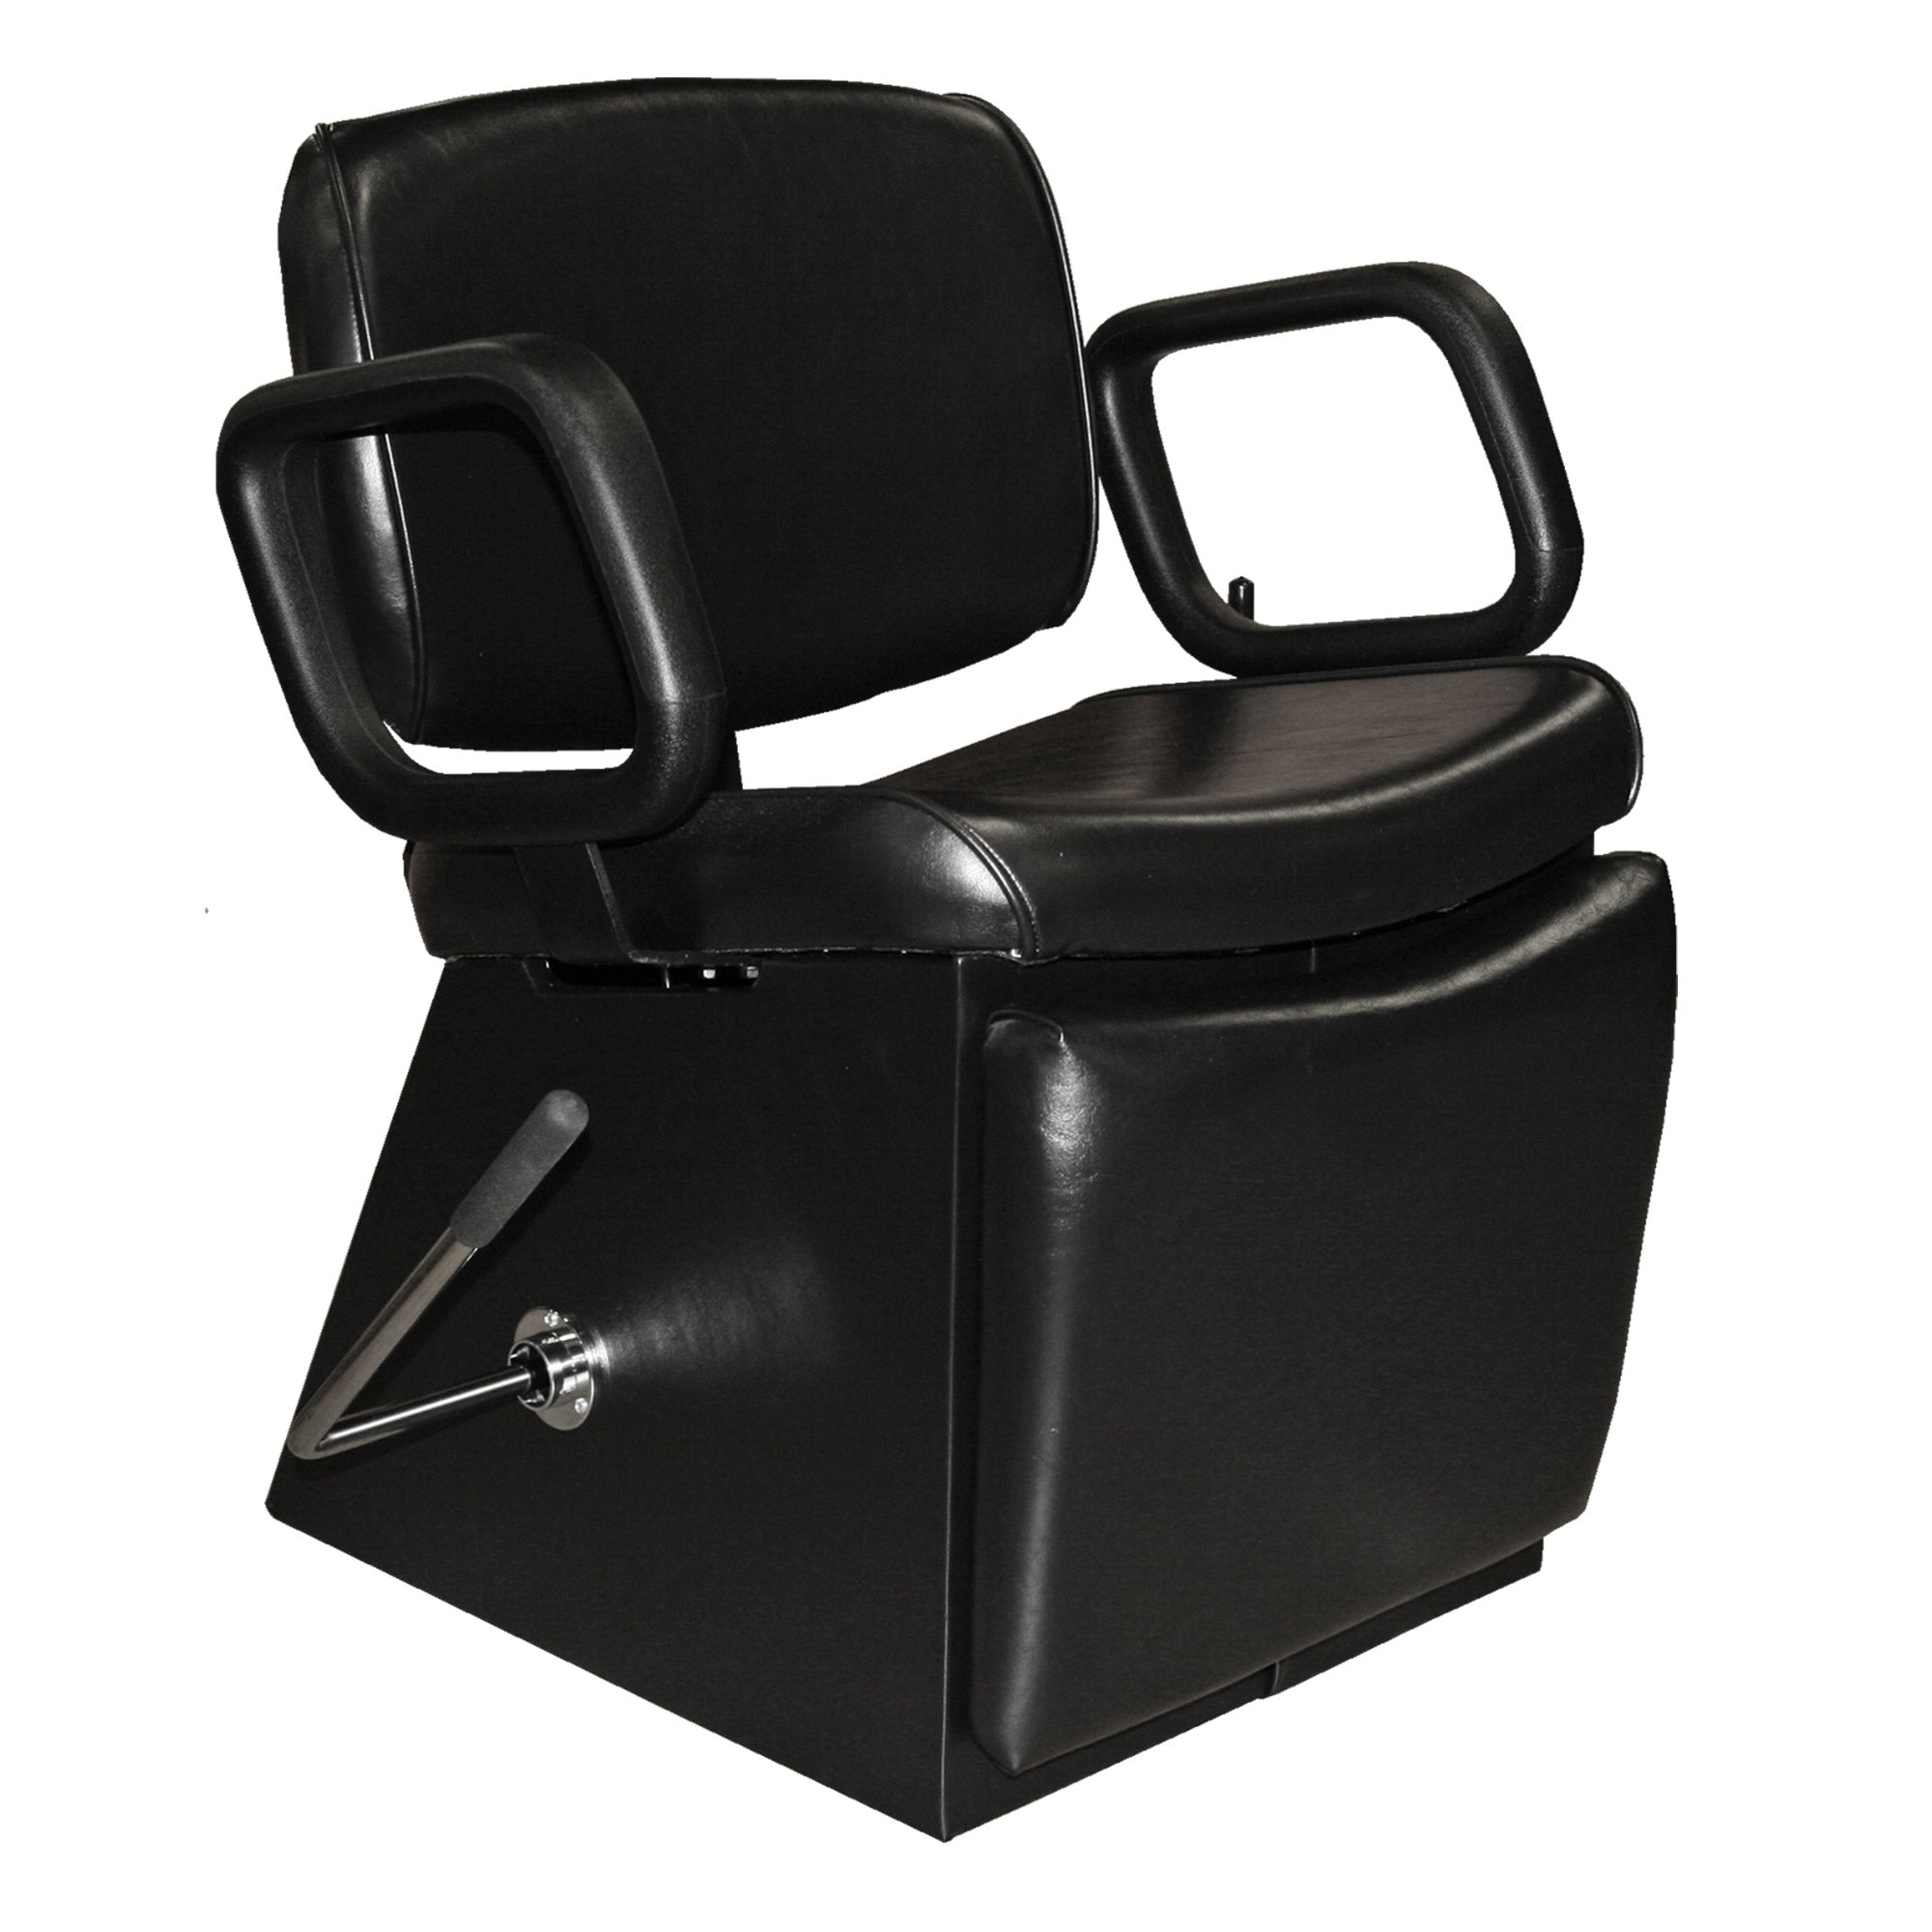 QSE Shampoo Chair with Legrest - Collins